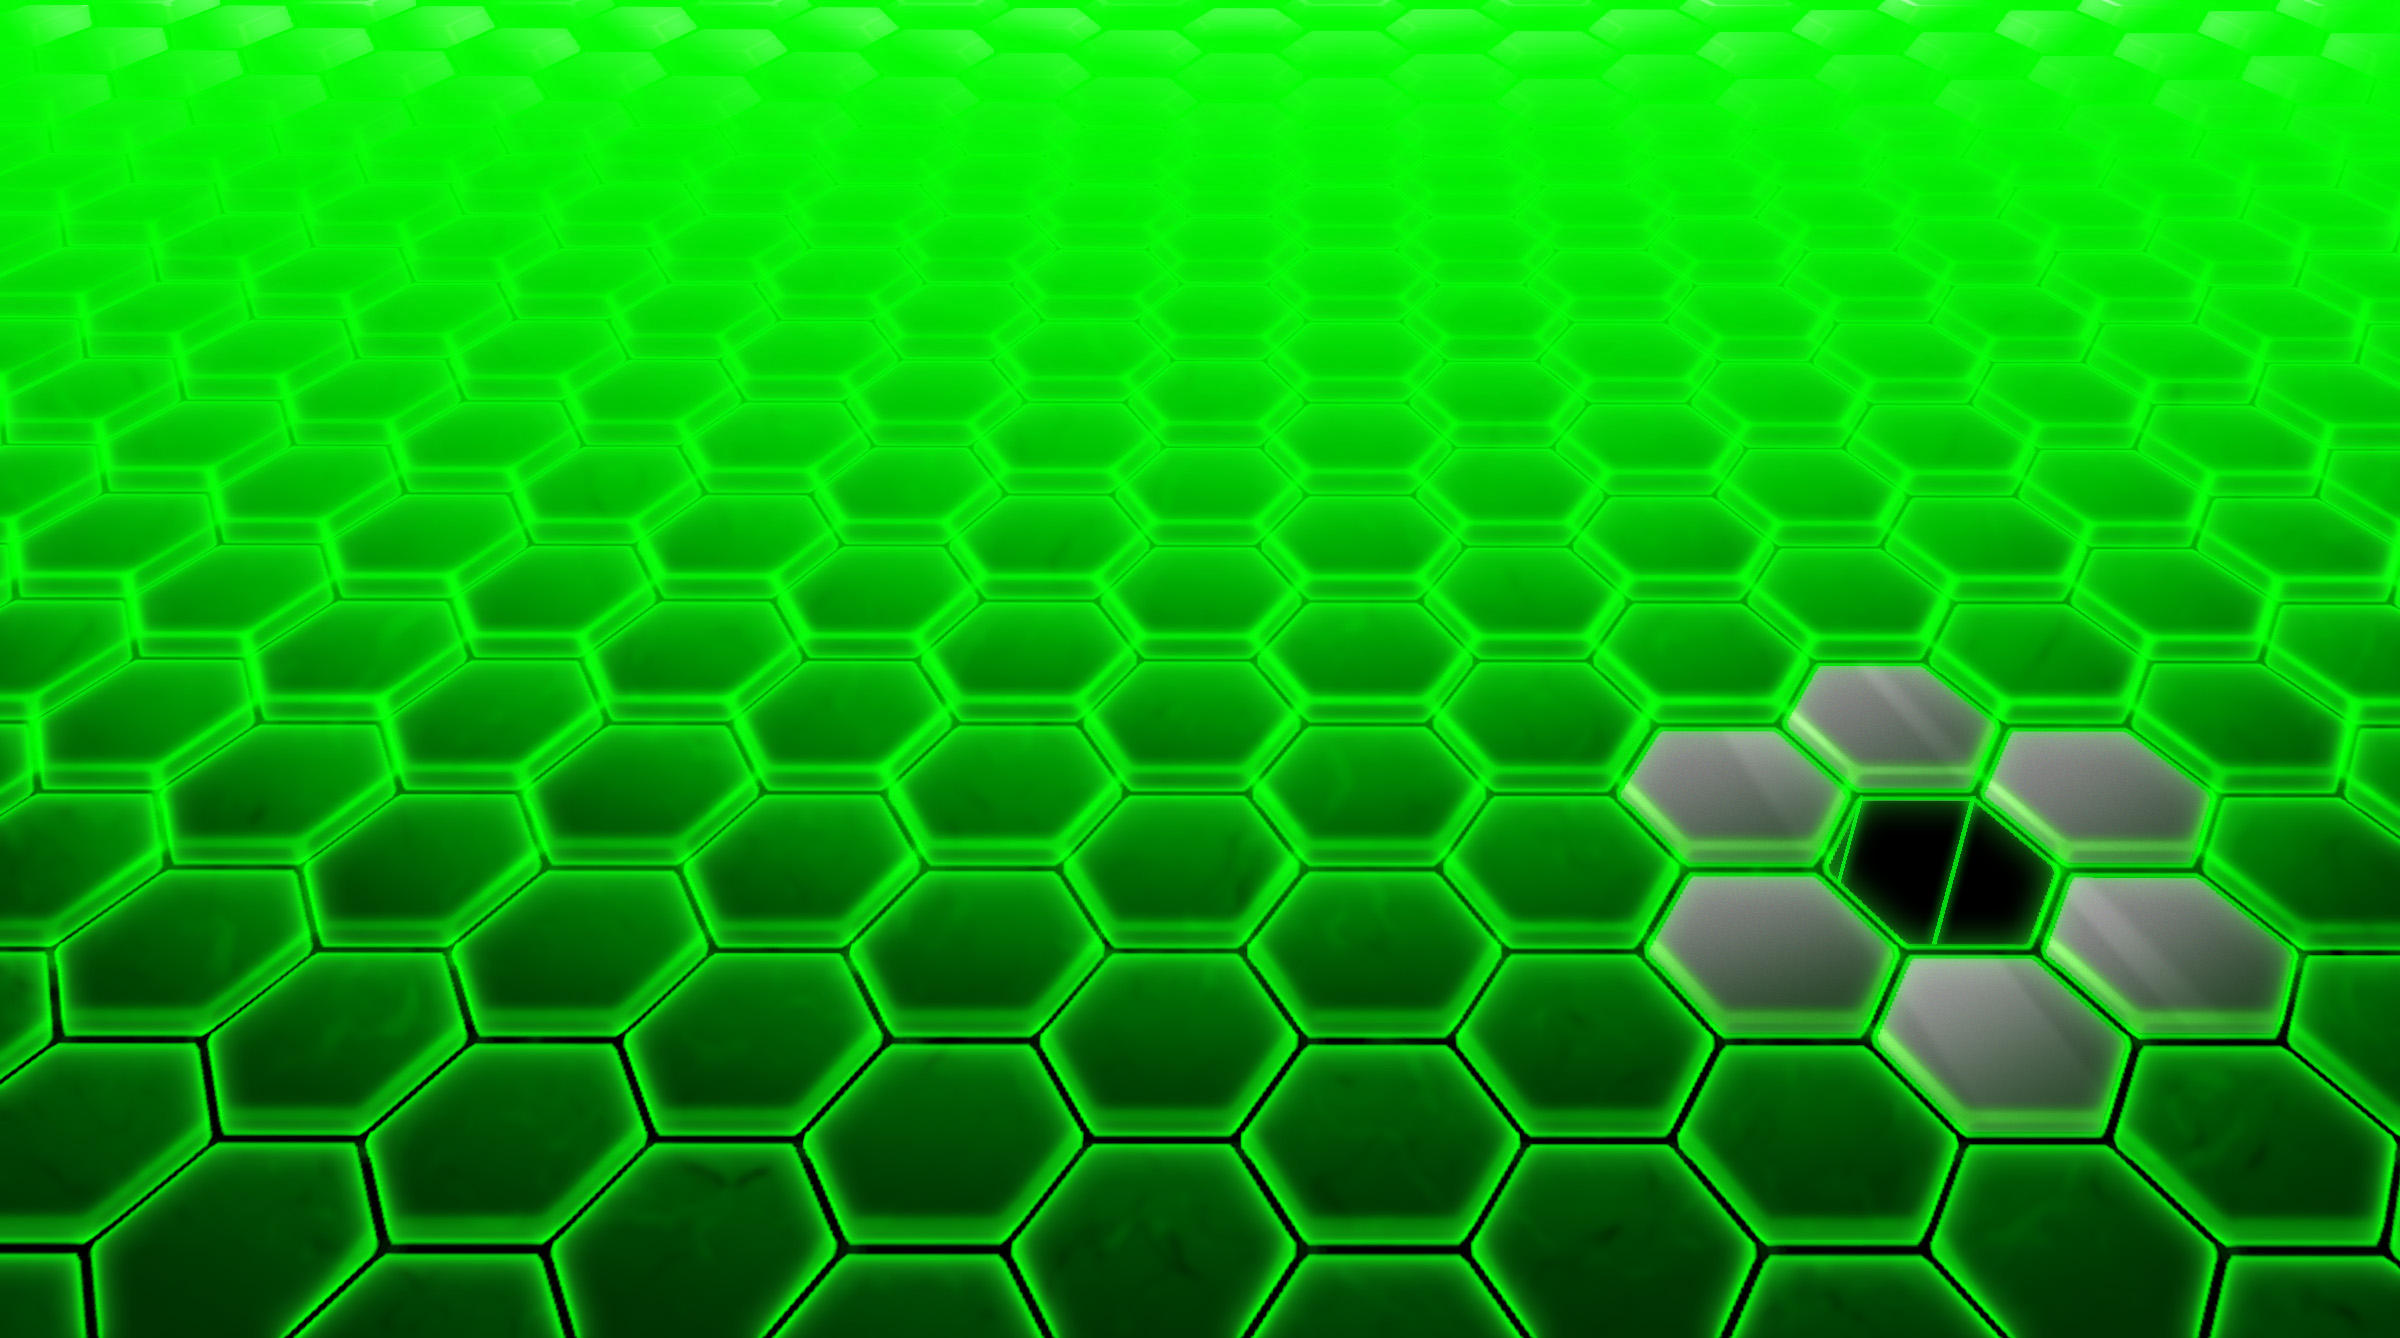 hive tech wallpaper green by aexease on deviantart